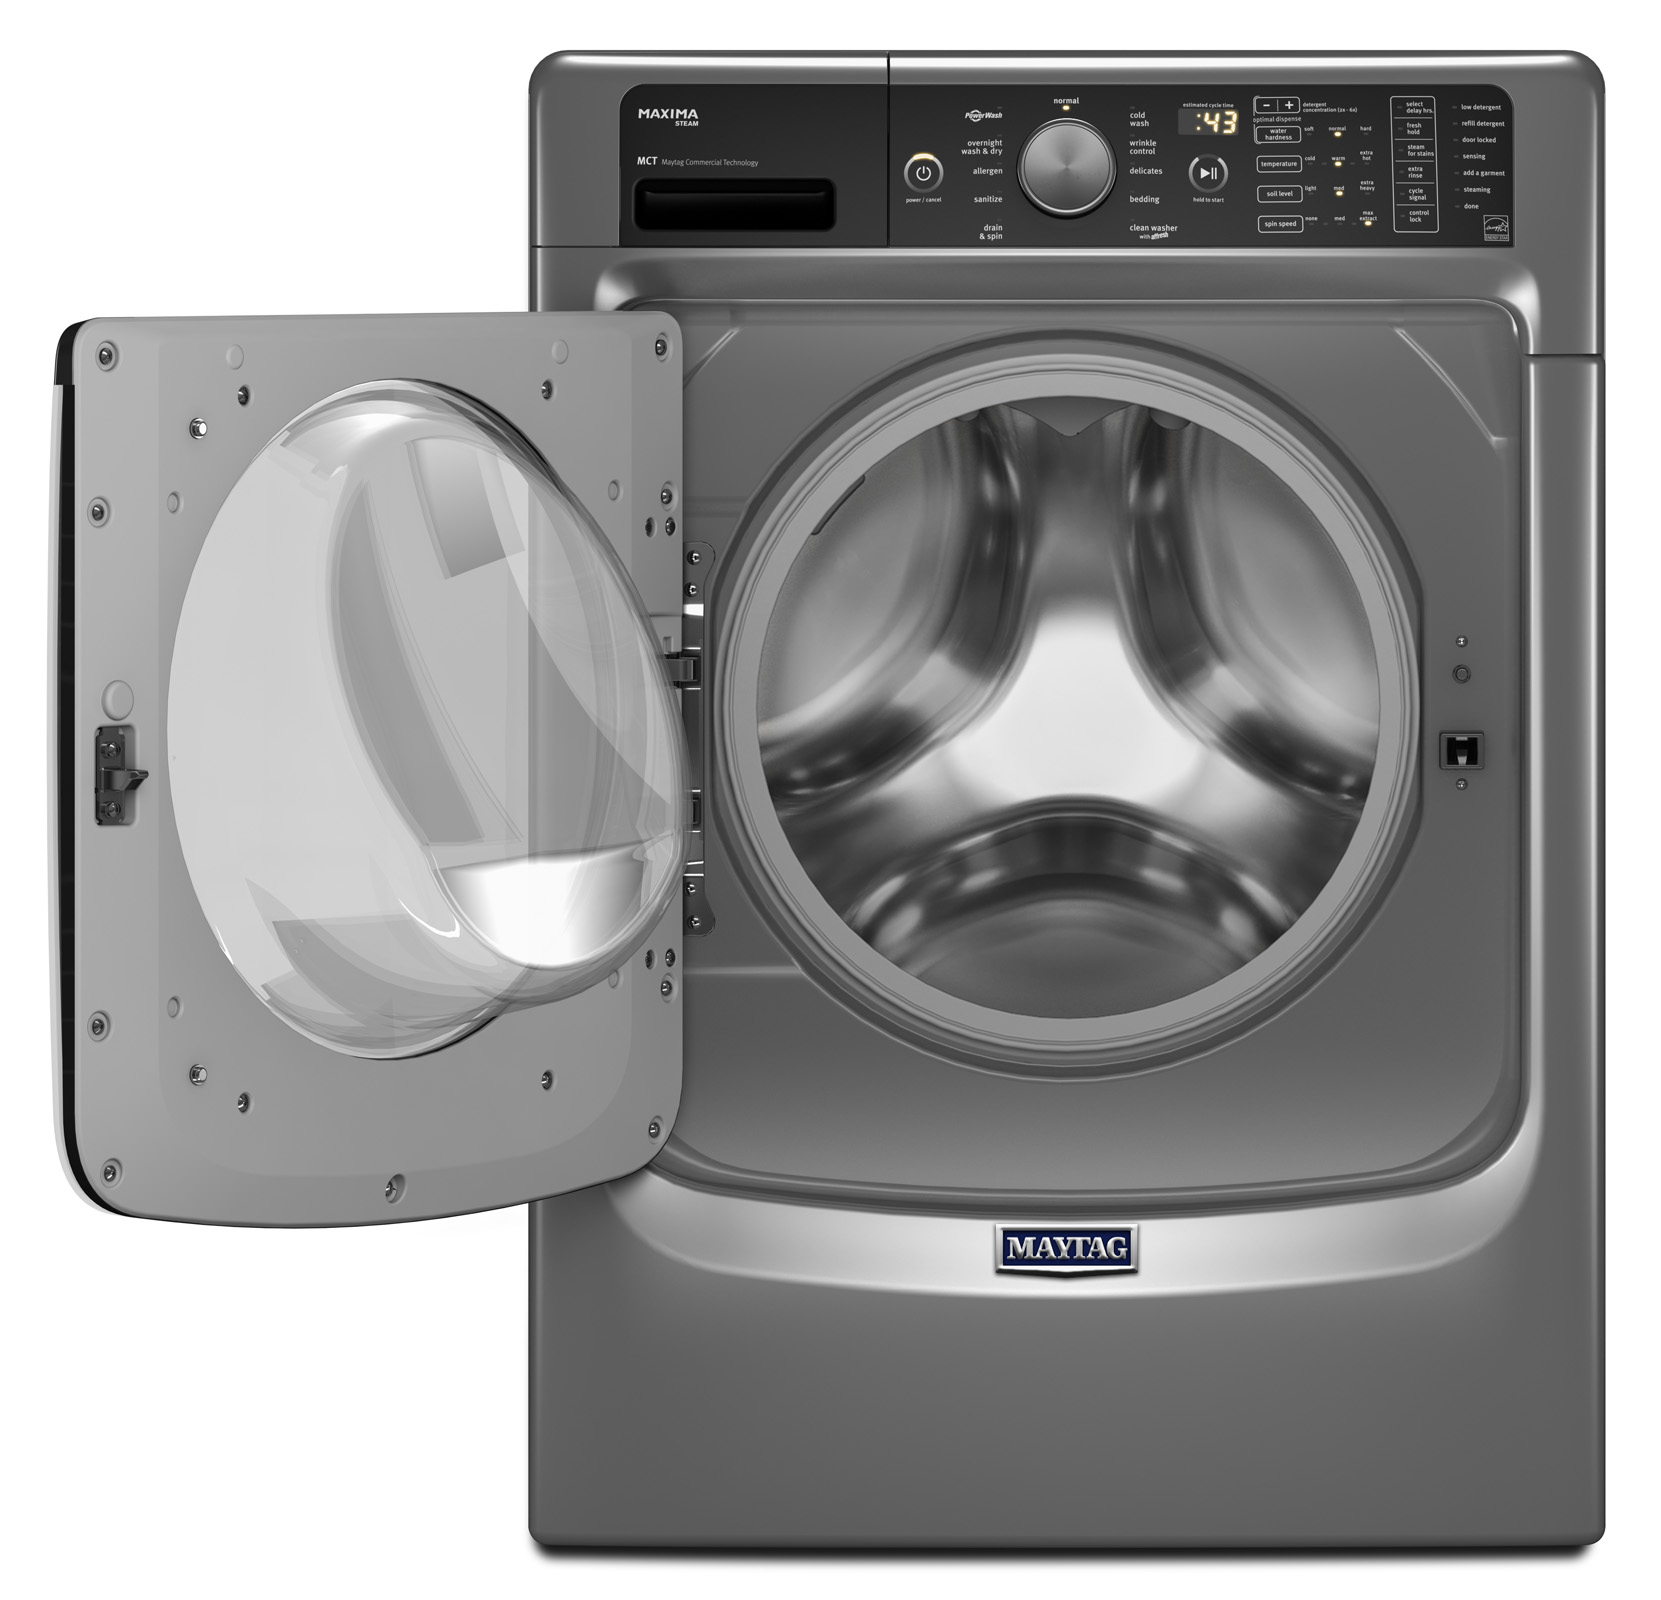 Maytag 4.5 cu. ft. Maxima® Front-Load Washer w/ Wash and Dry Cycle - Metallic Slate